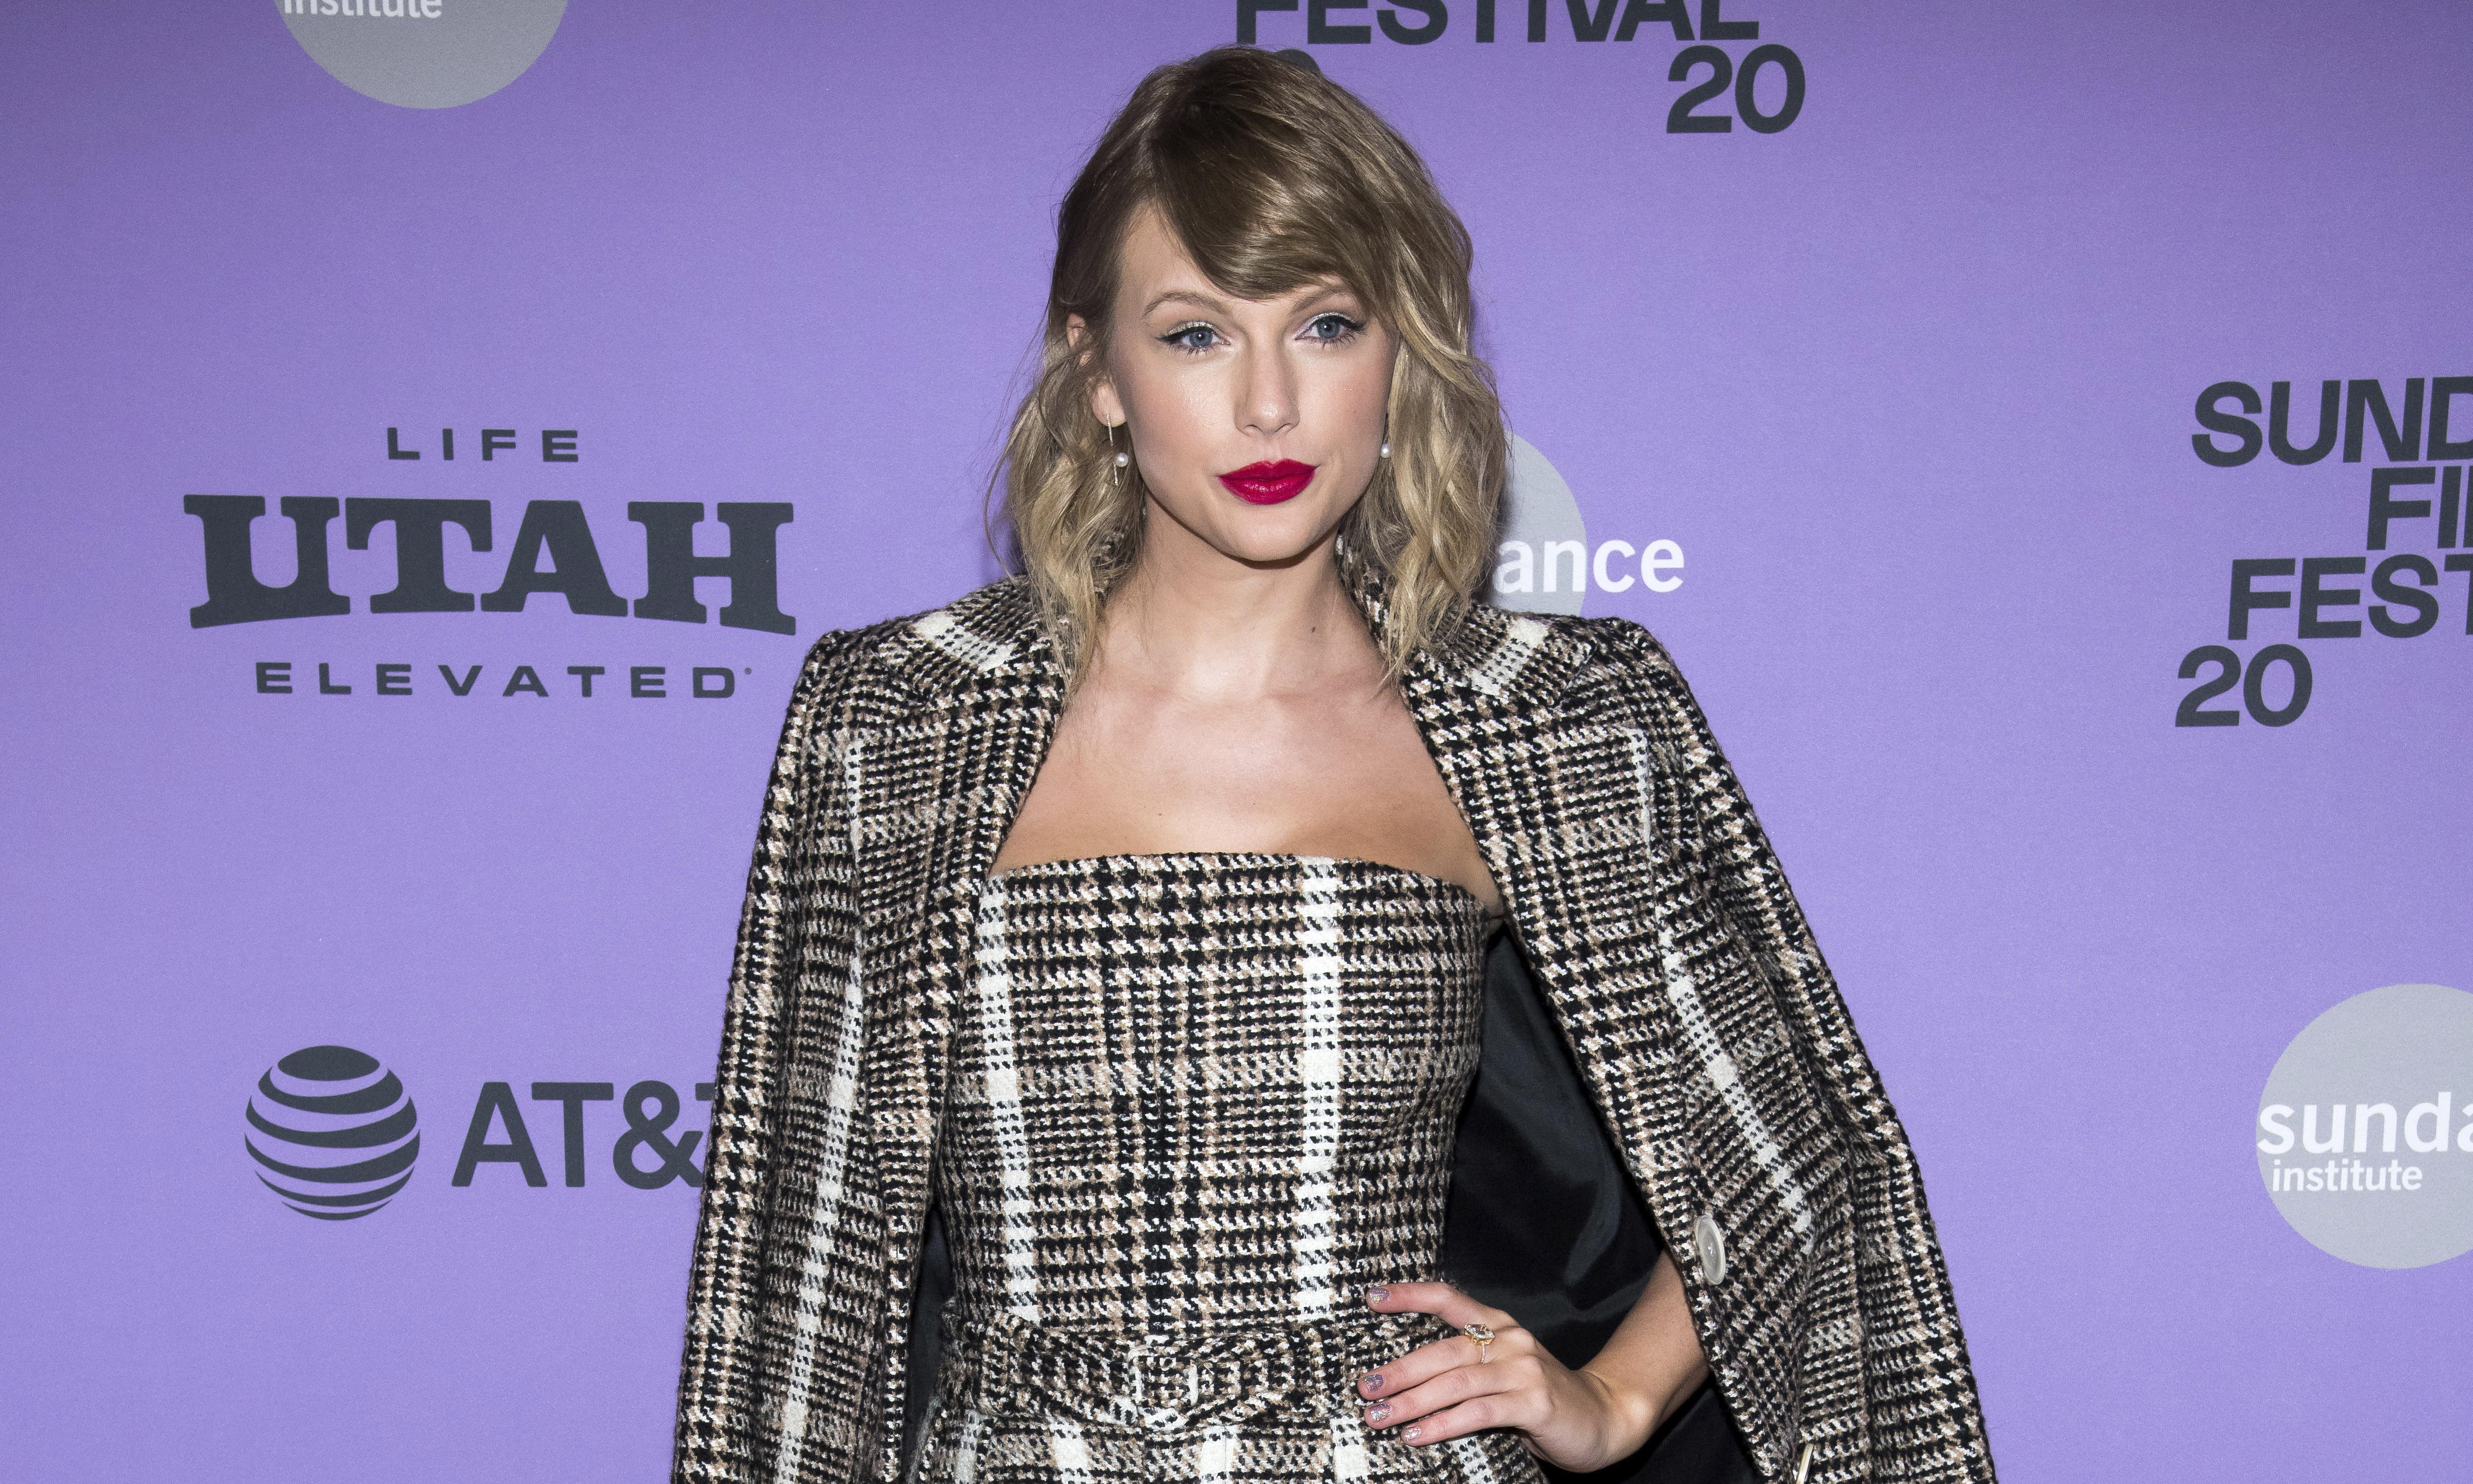 Taylor Swift discloses fight with eating disorder in new documentary